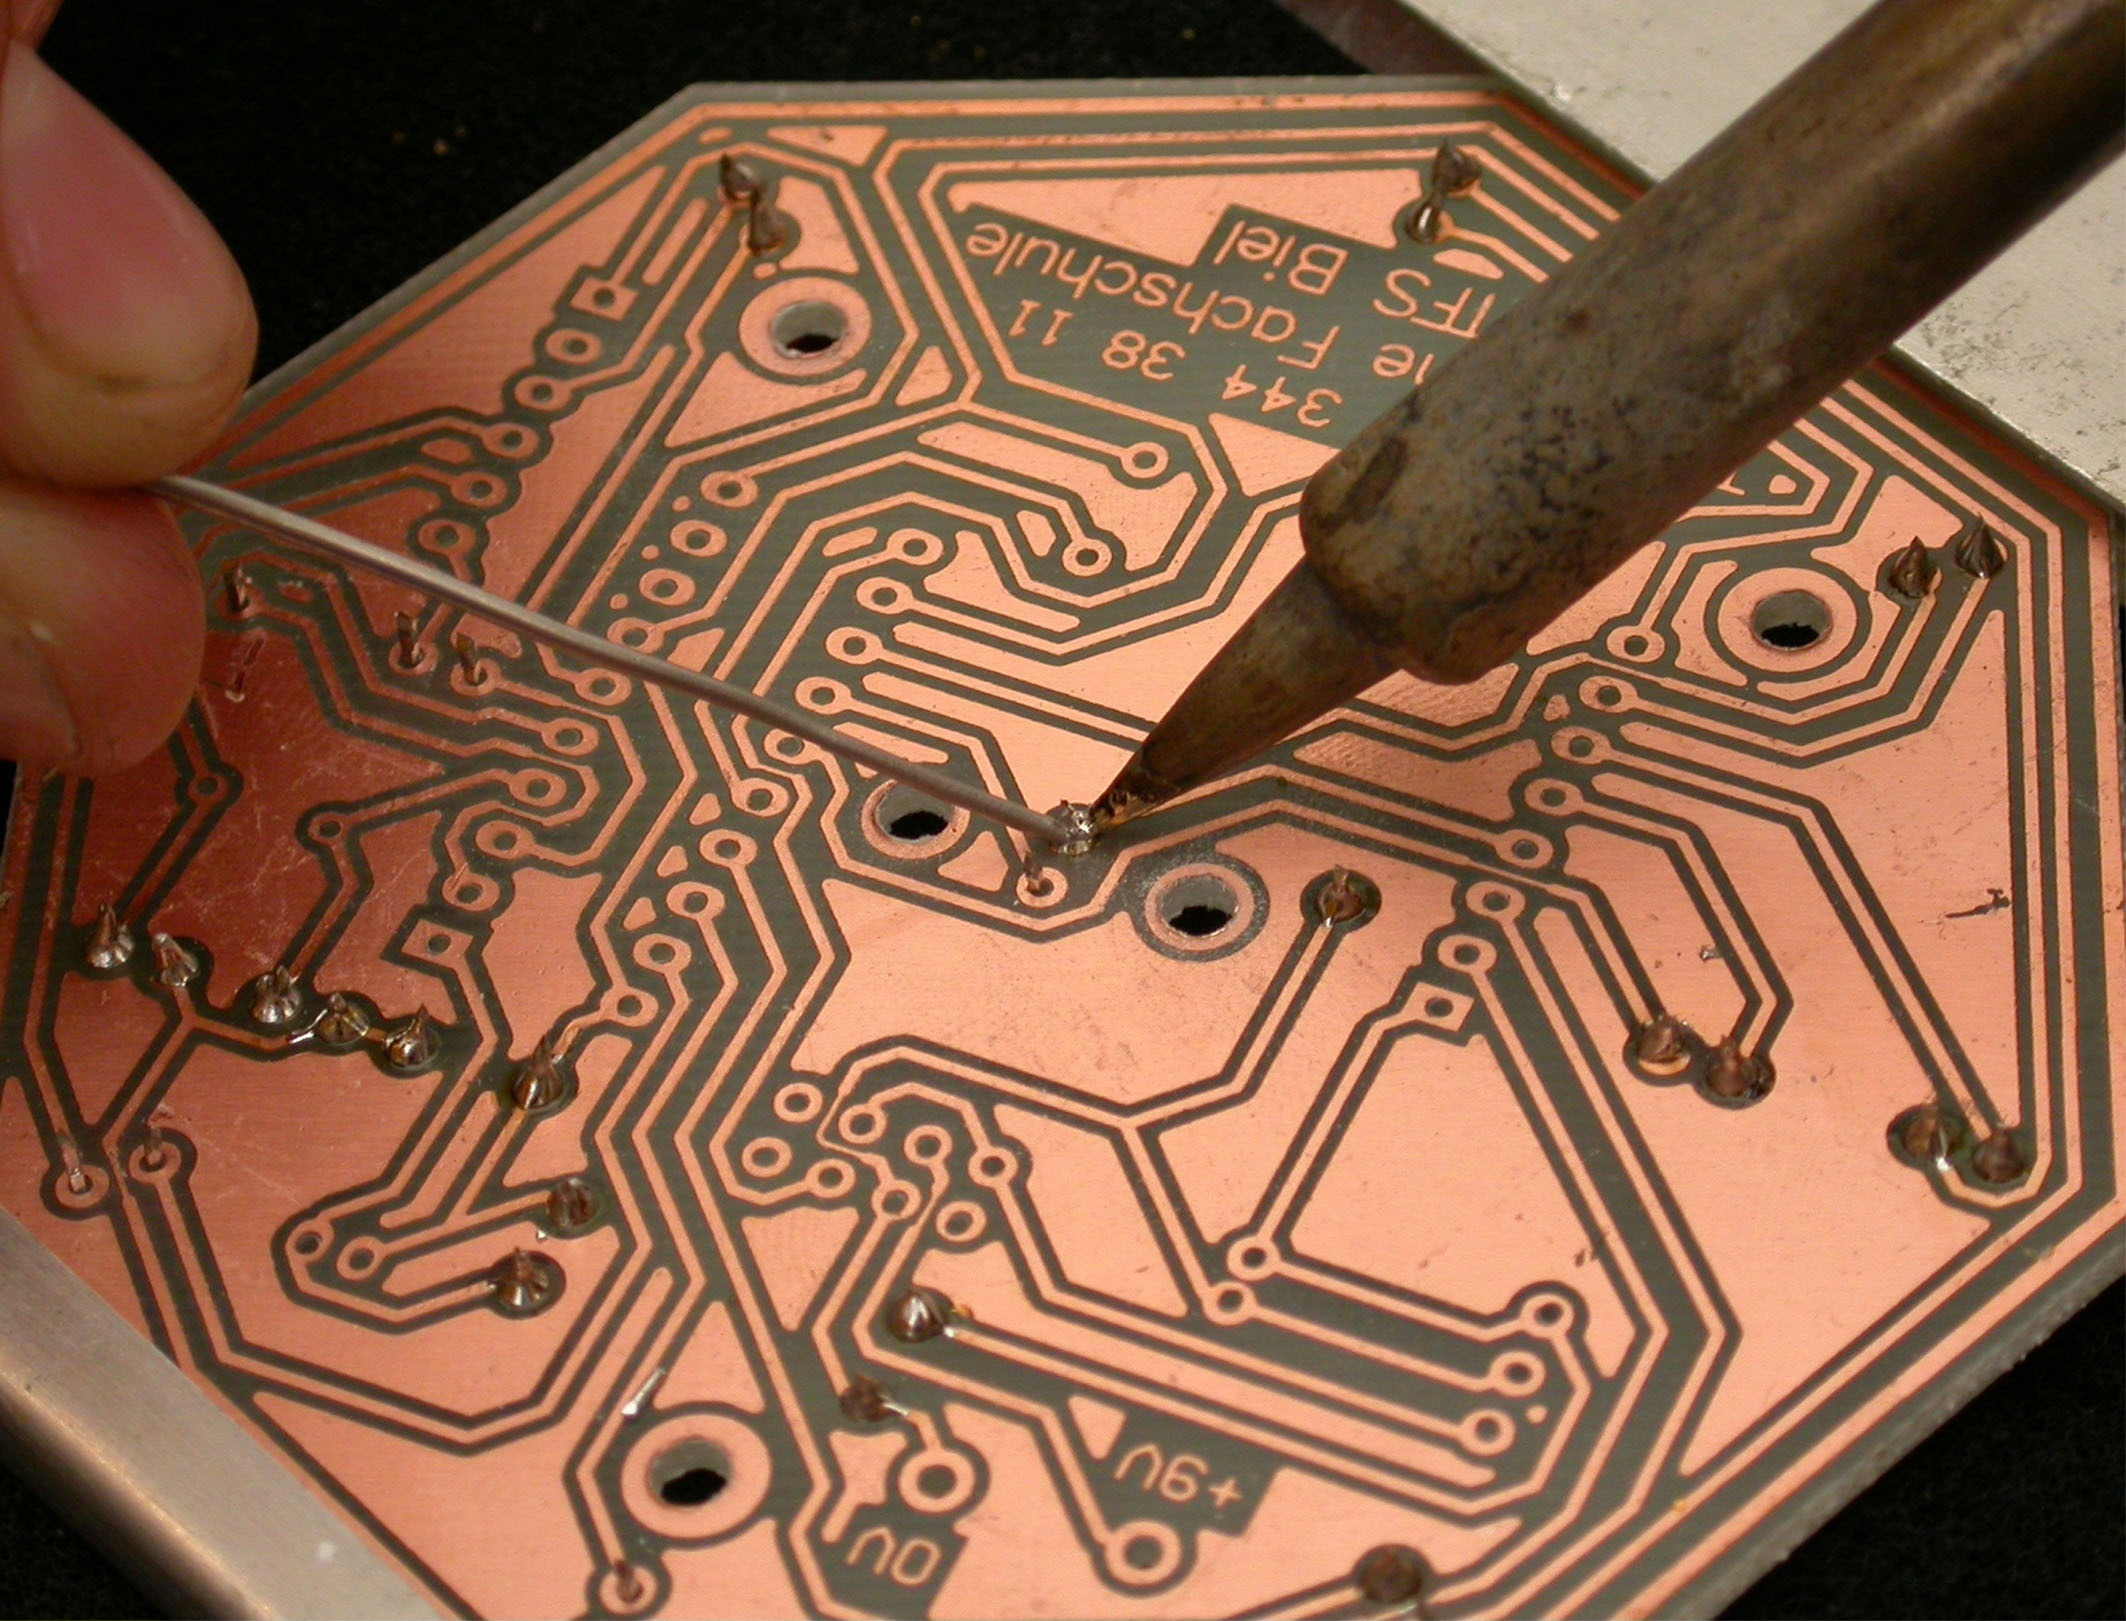 Soldering a connection on a PCB 2005